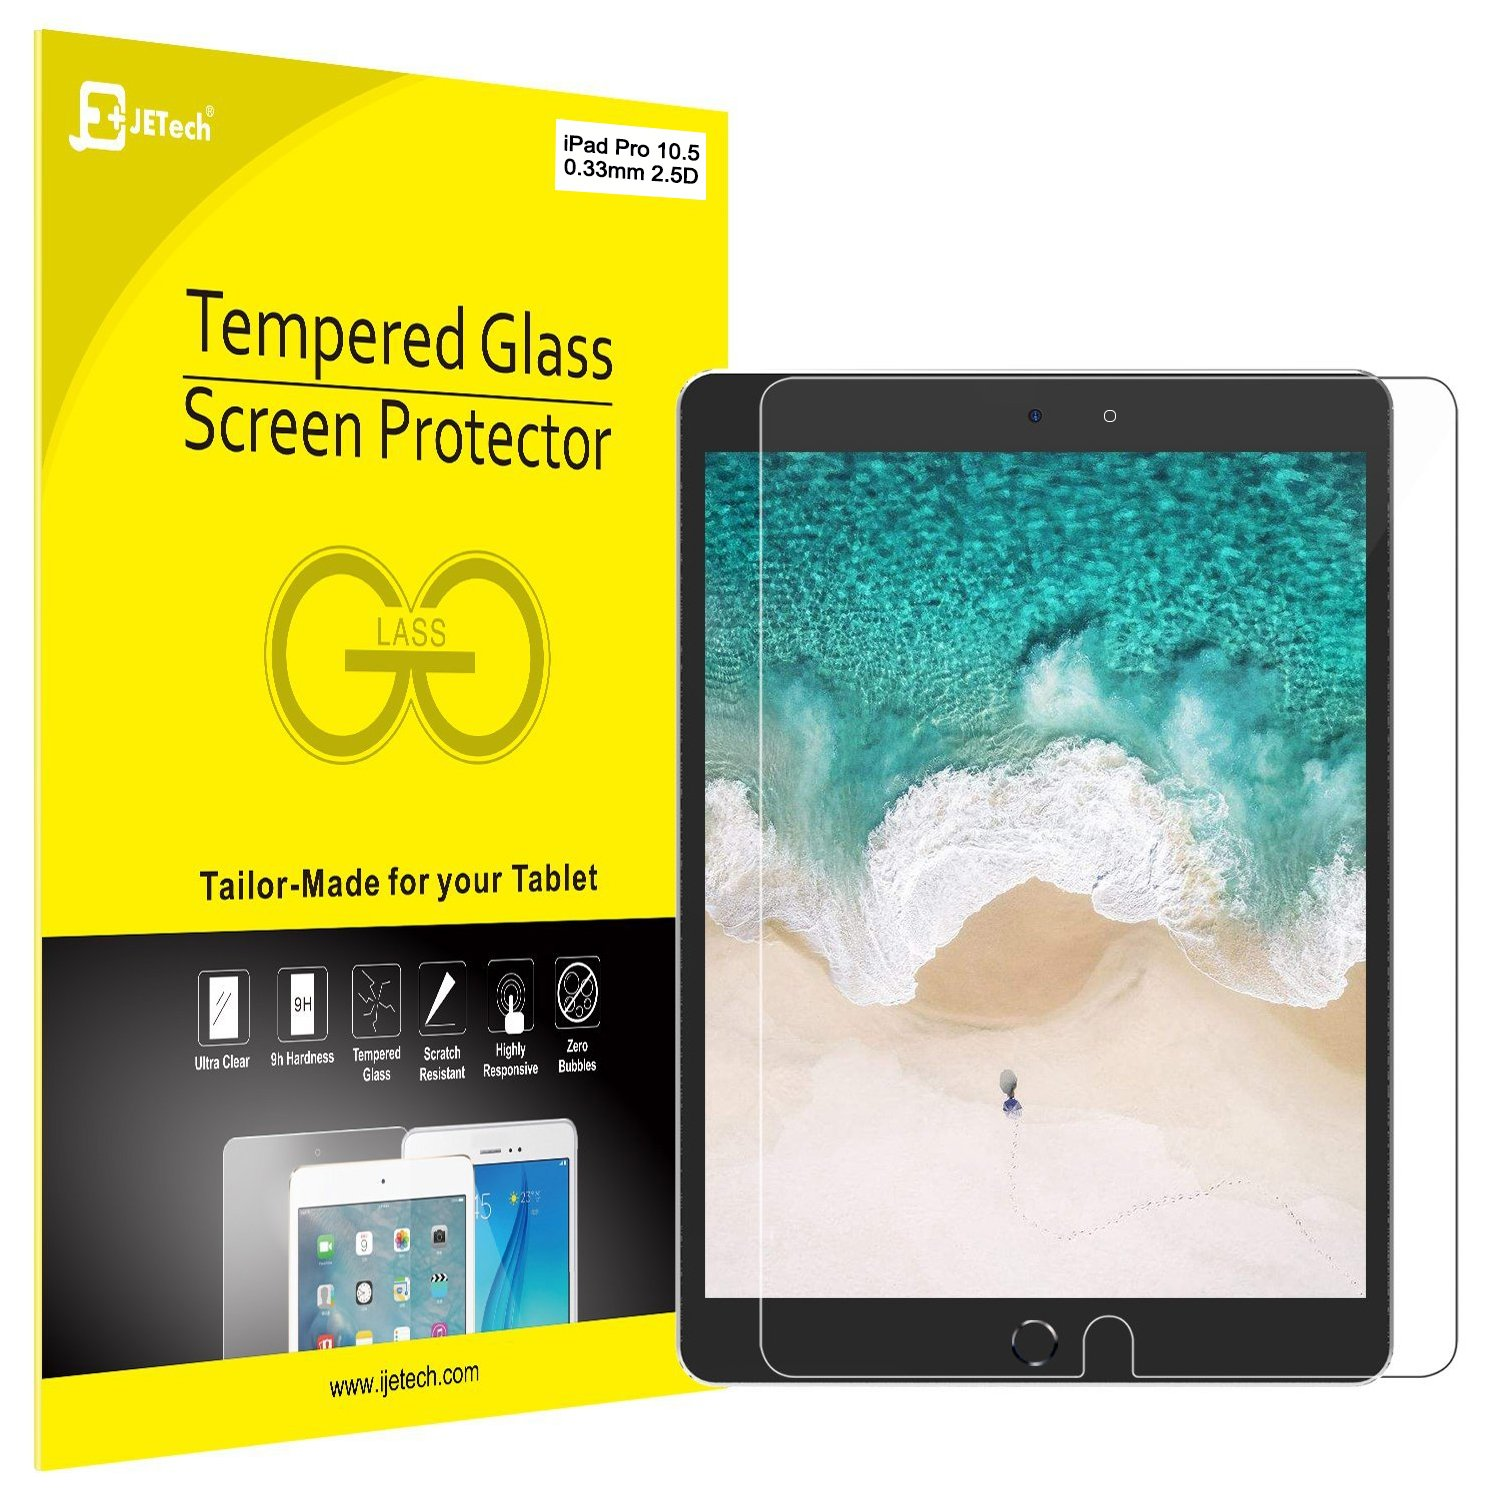 Surface pencil compatible tempered glass screen protector with 2 5d - Ipad Pro 10 5 Screen Protector Jetech Tempered Glass Screen Protector Film For The New Apple 10 5 Inch Ipad Pro 2017 Amazon Ca Electronics